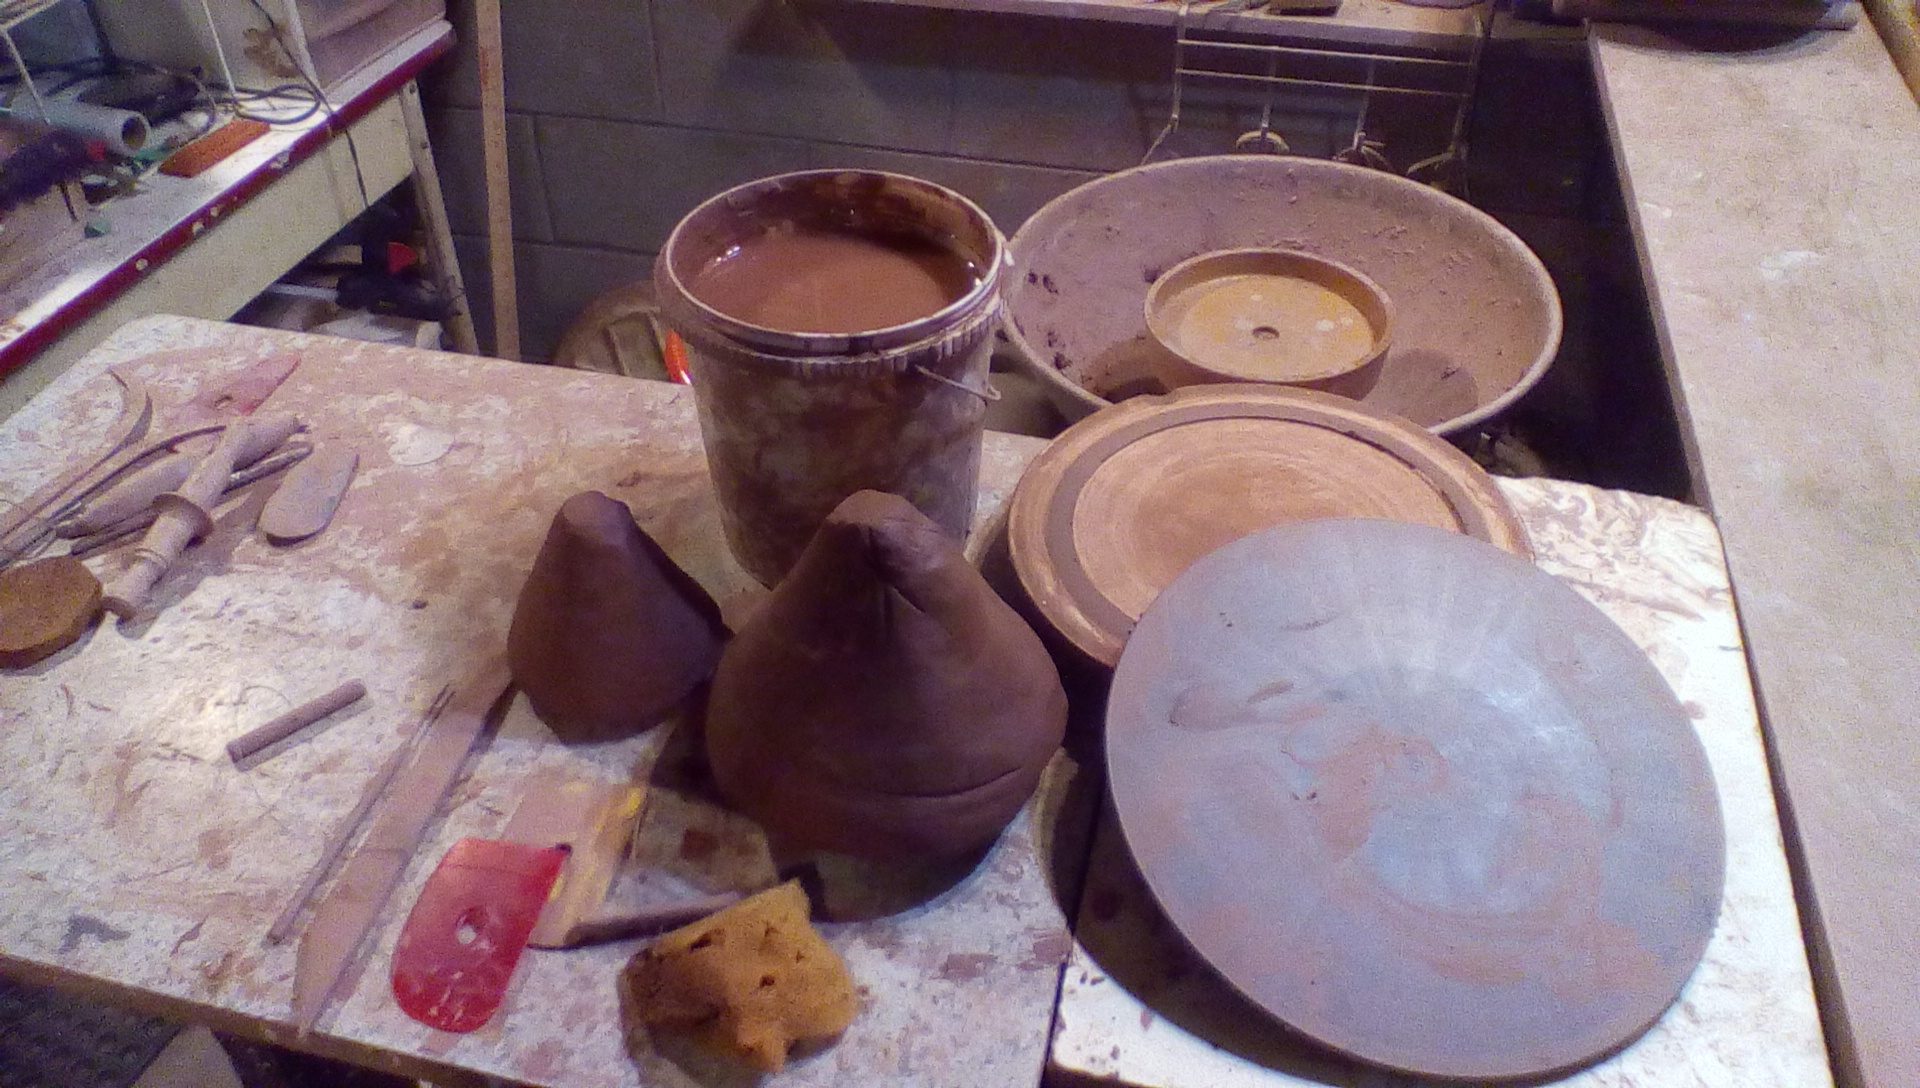 clay and pottery tools